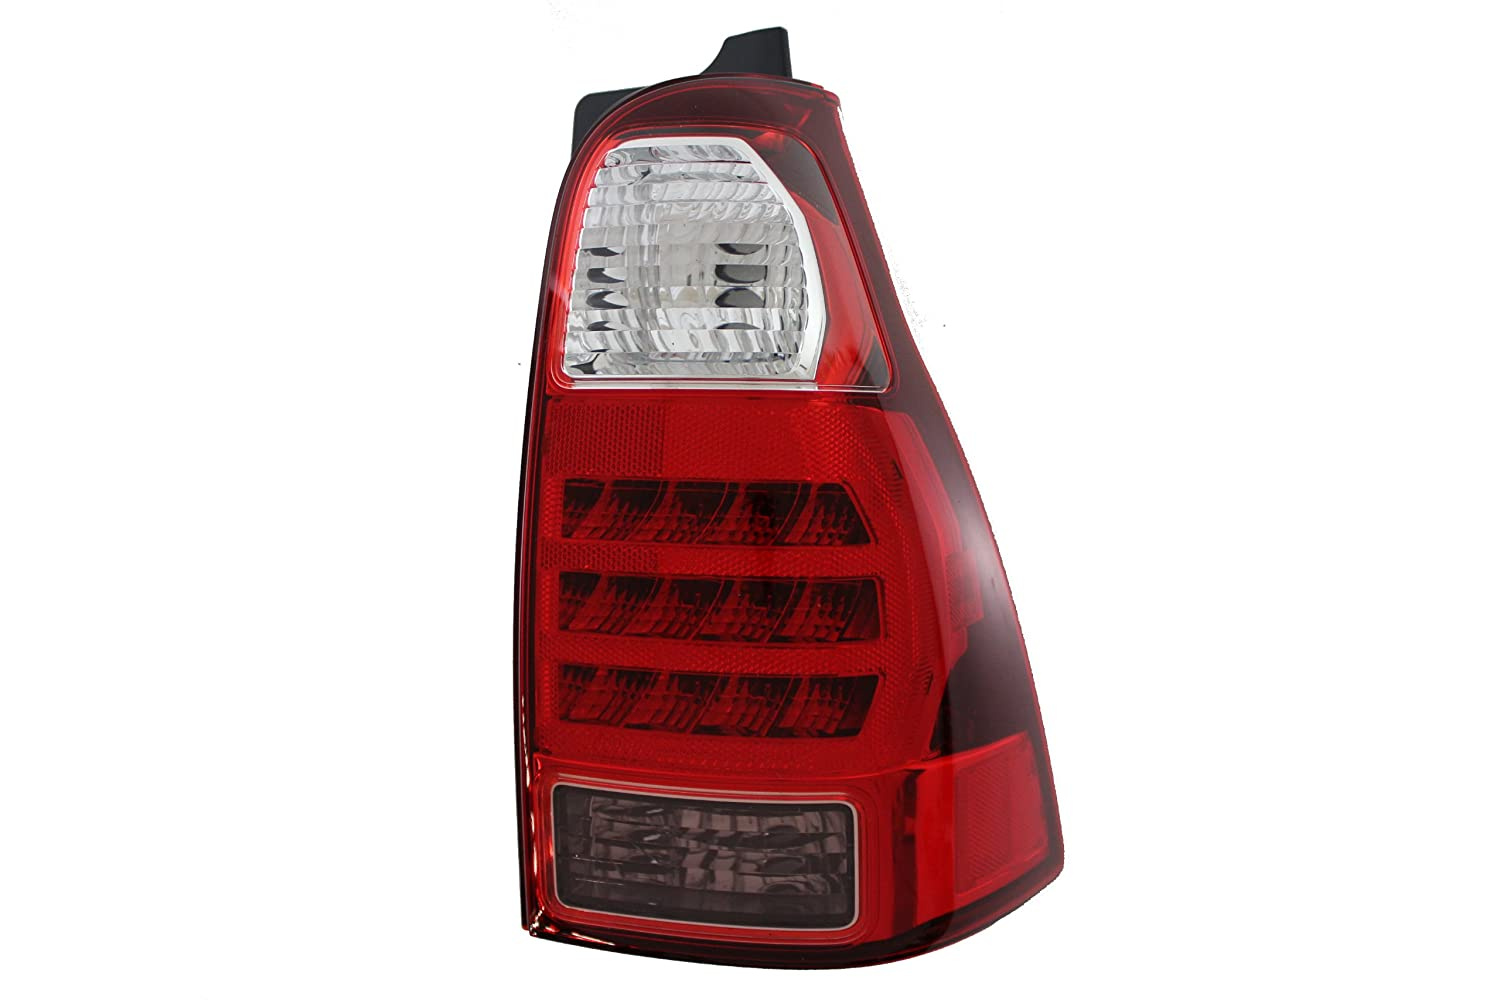 Genuine Toyota Parts 81551-35320 Passenger Side Taillight Assembly